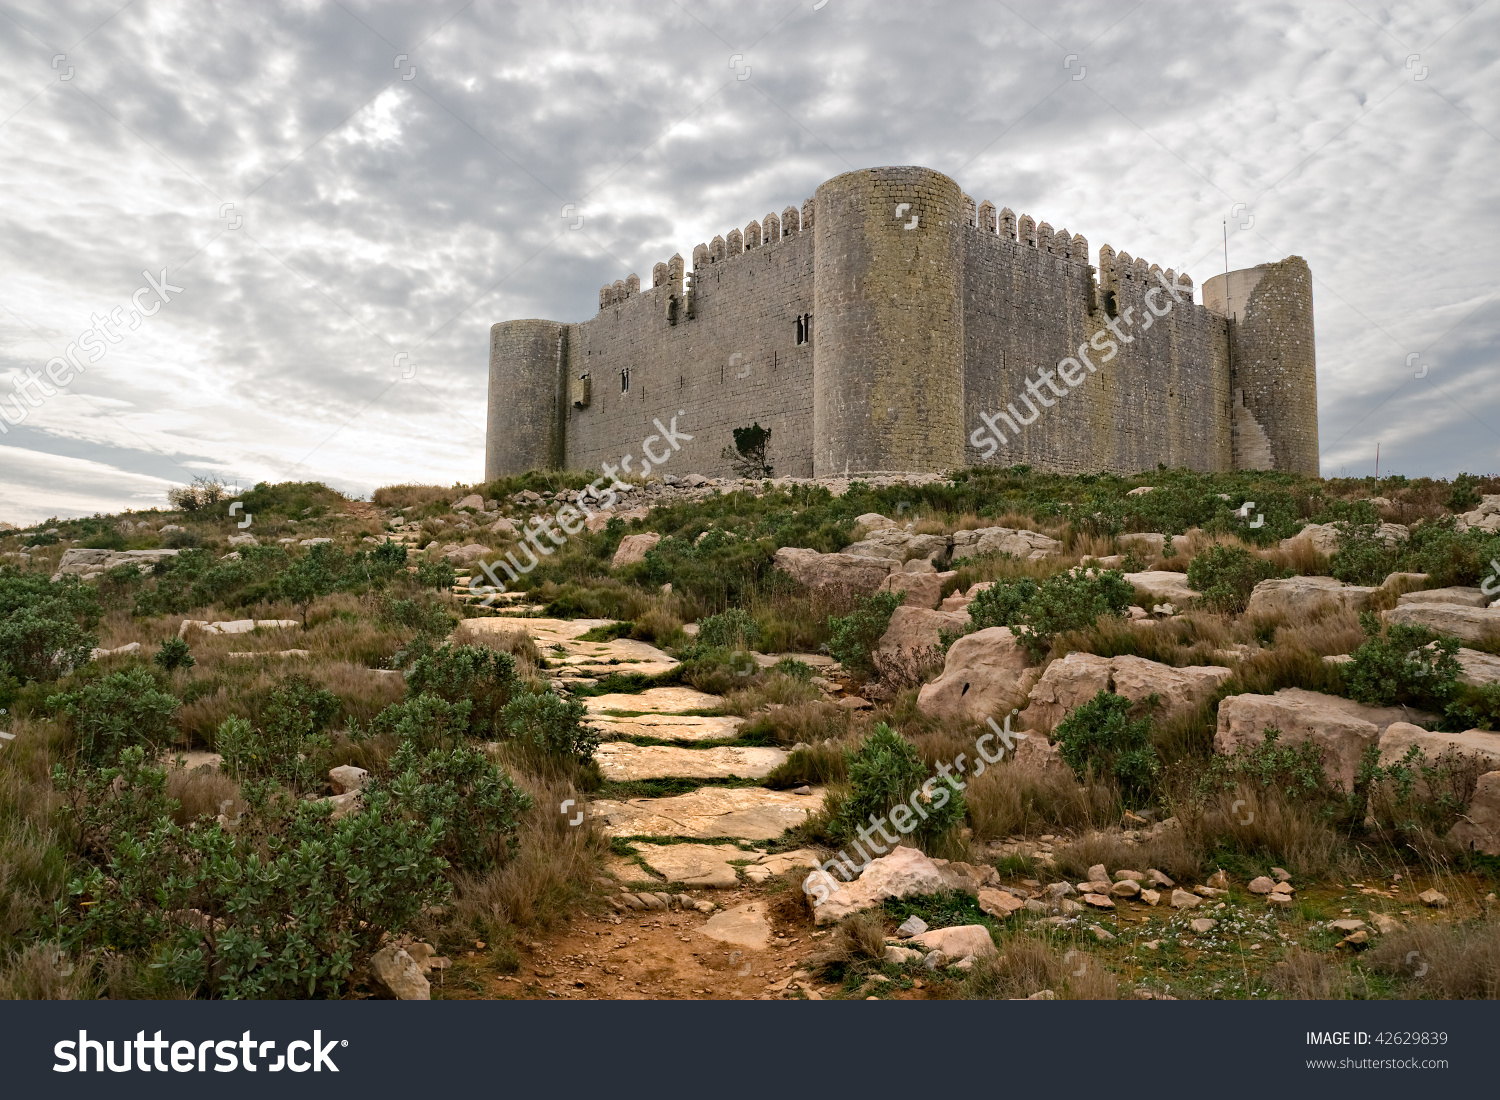 Medieval Castle Of Torroella De Montgri On The Top Of A Mountain.